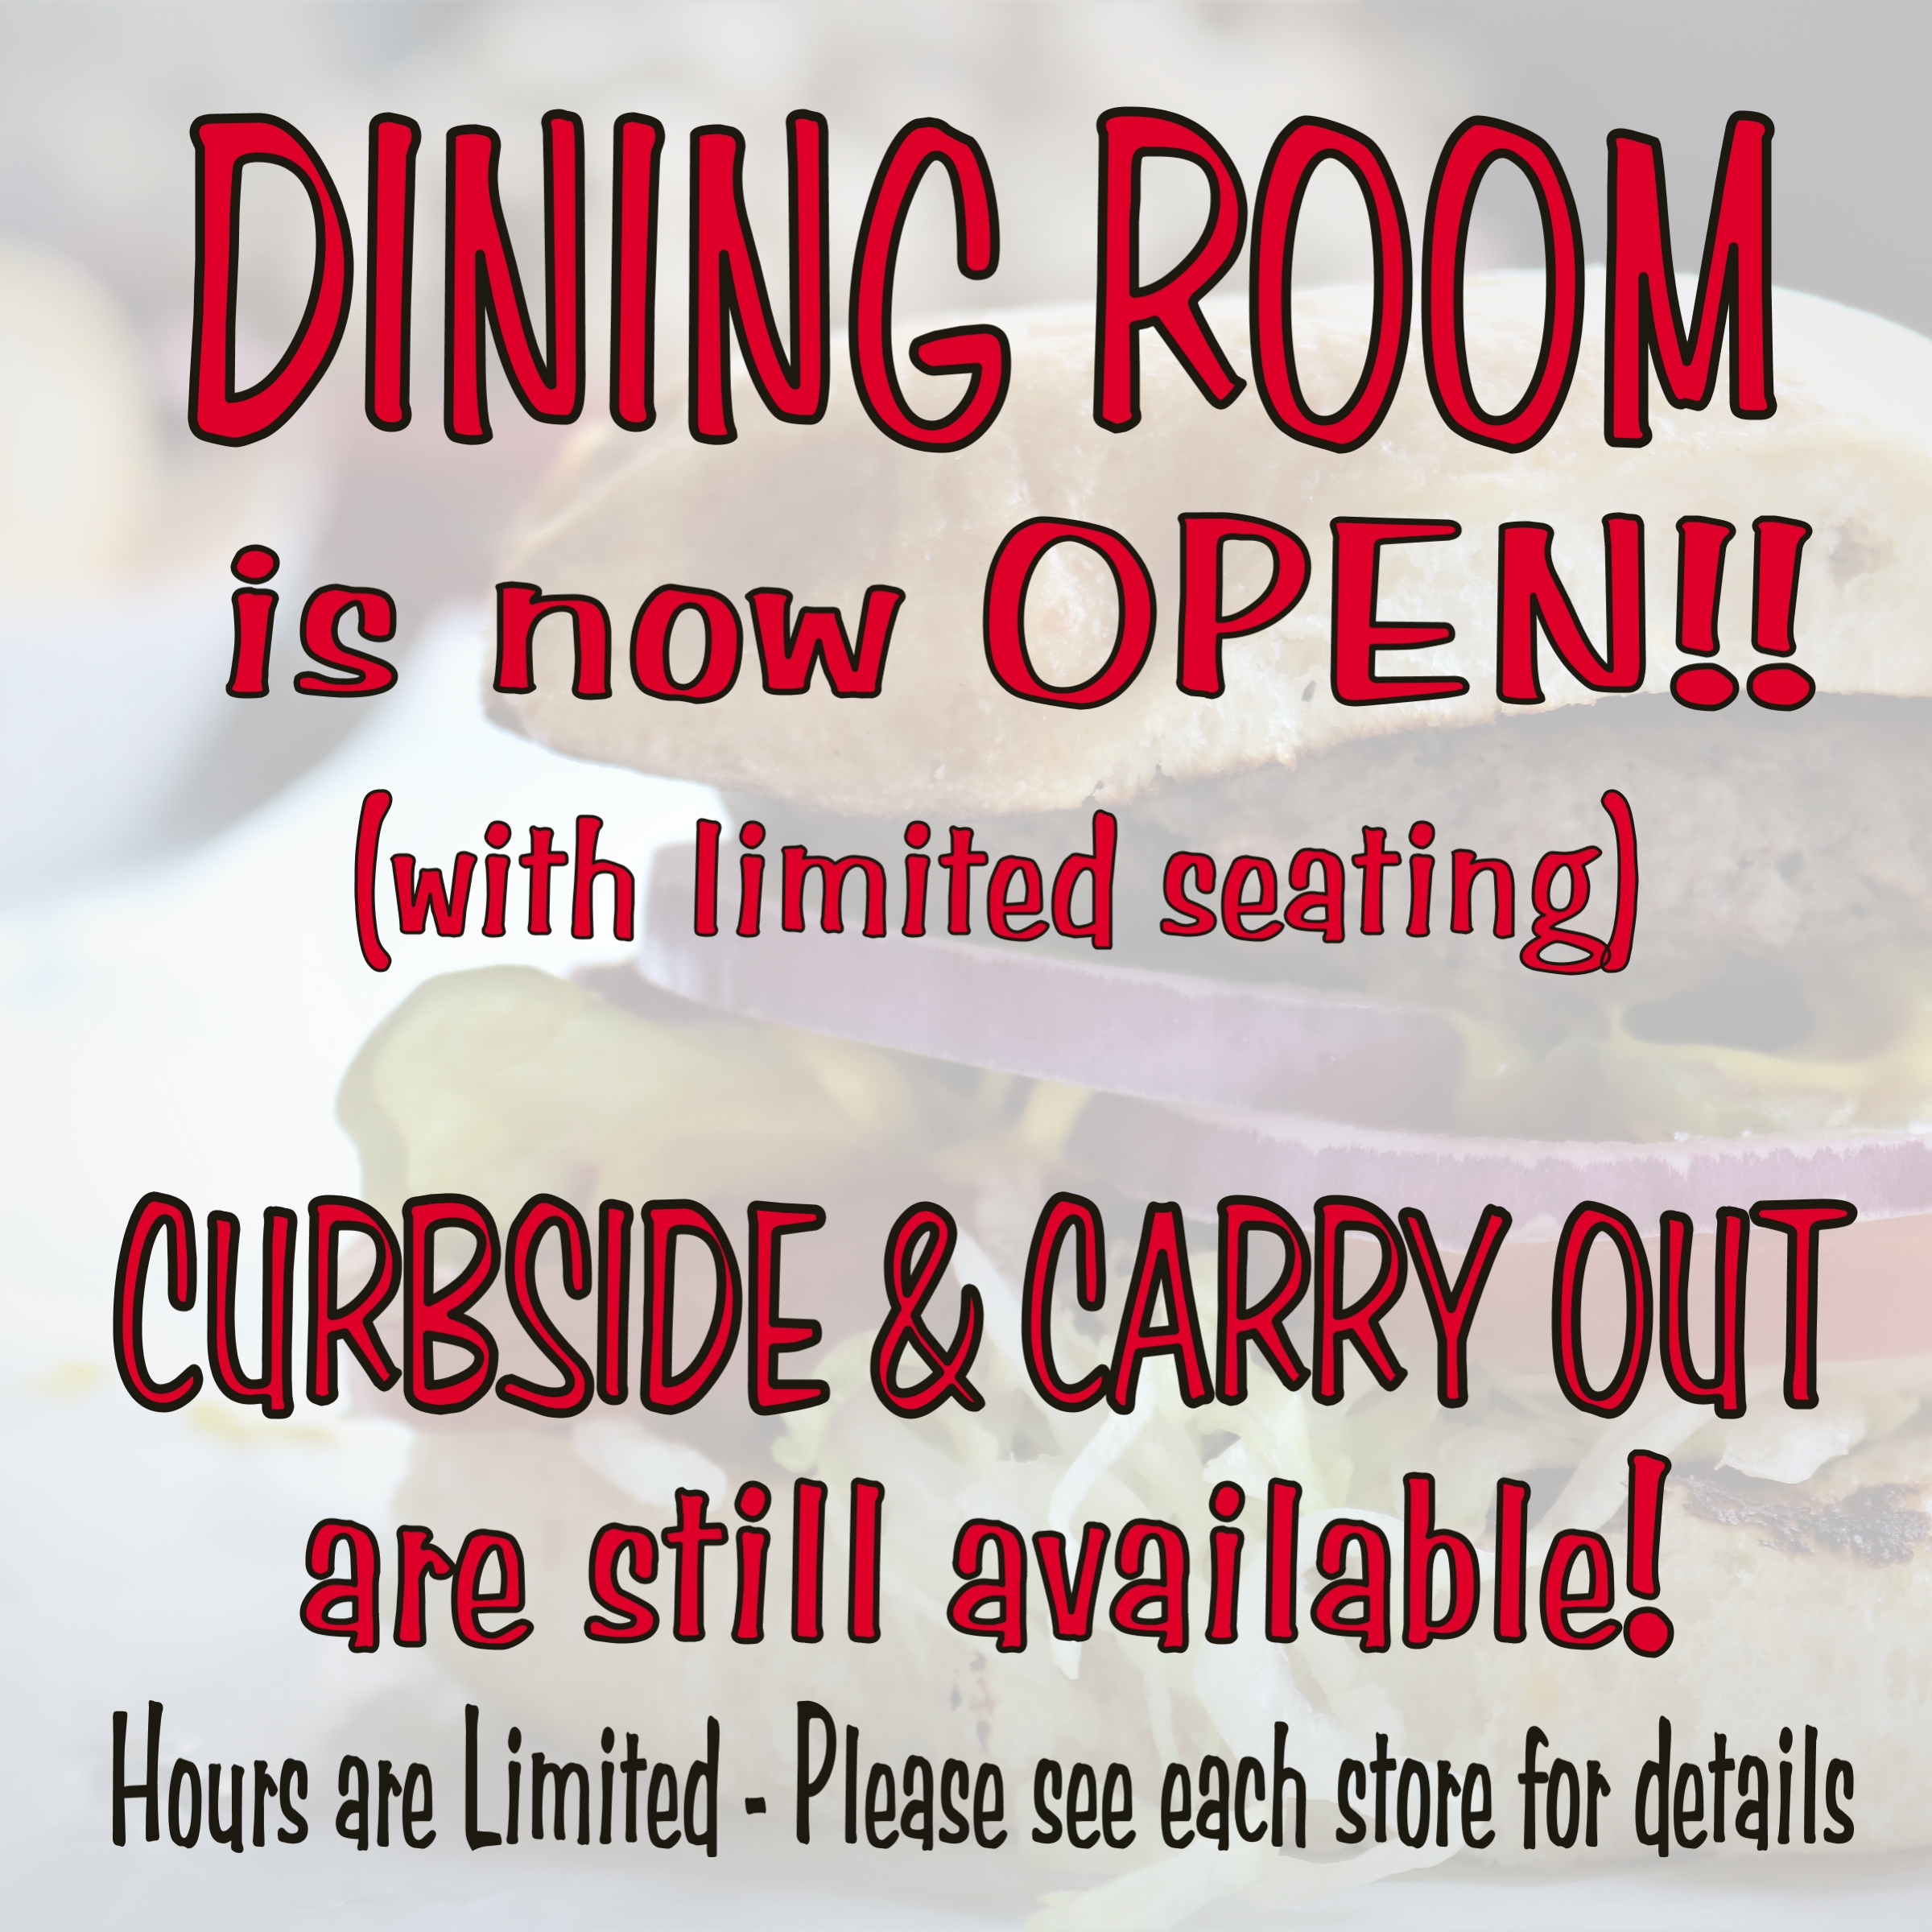 COVID-19-open-dining-001